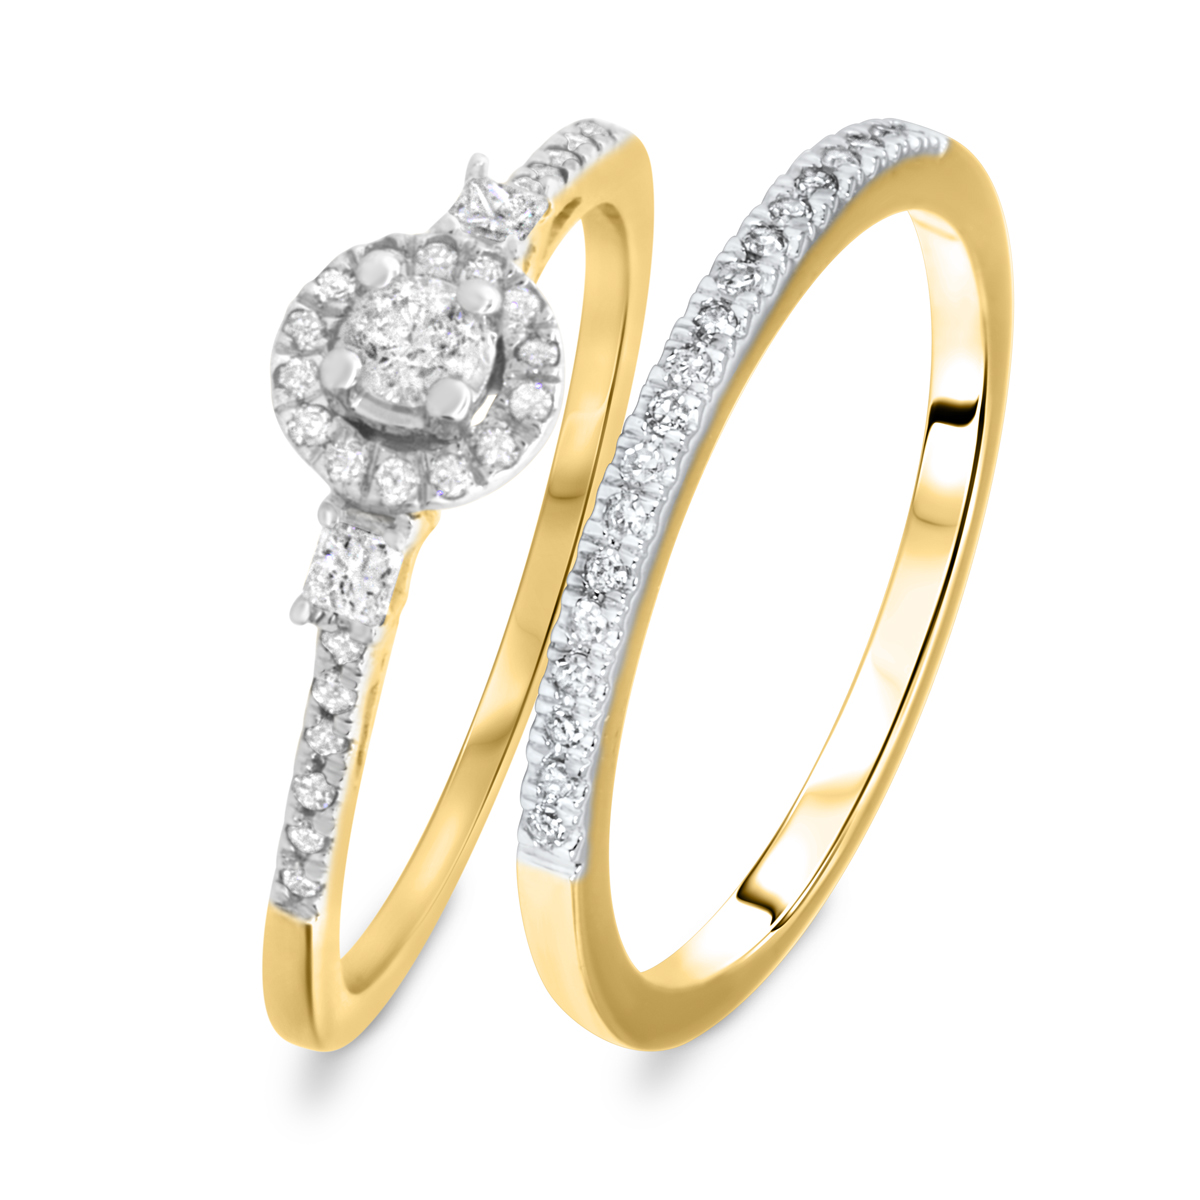 1/3 CT. T.W. Round Cut Diamond Ladies Bridal Wedding Ring Set 14K Yellow Gold